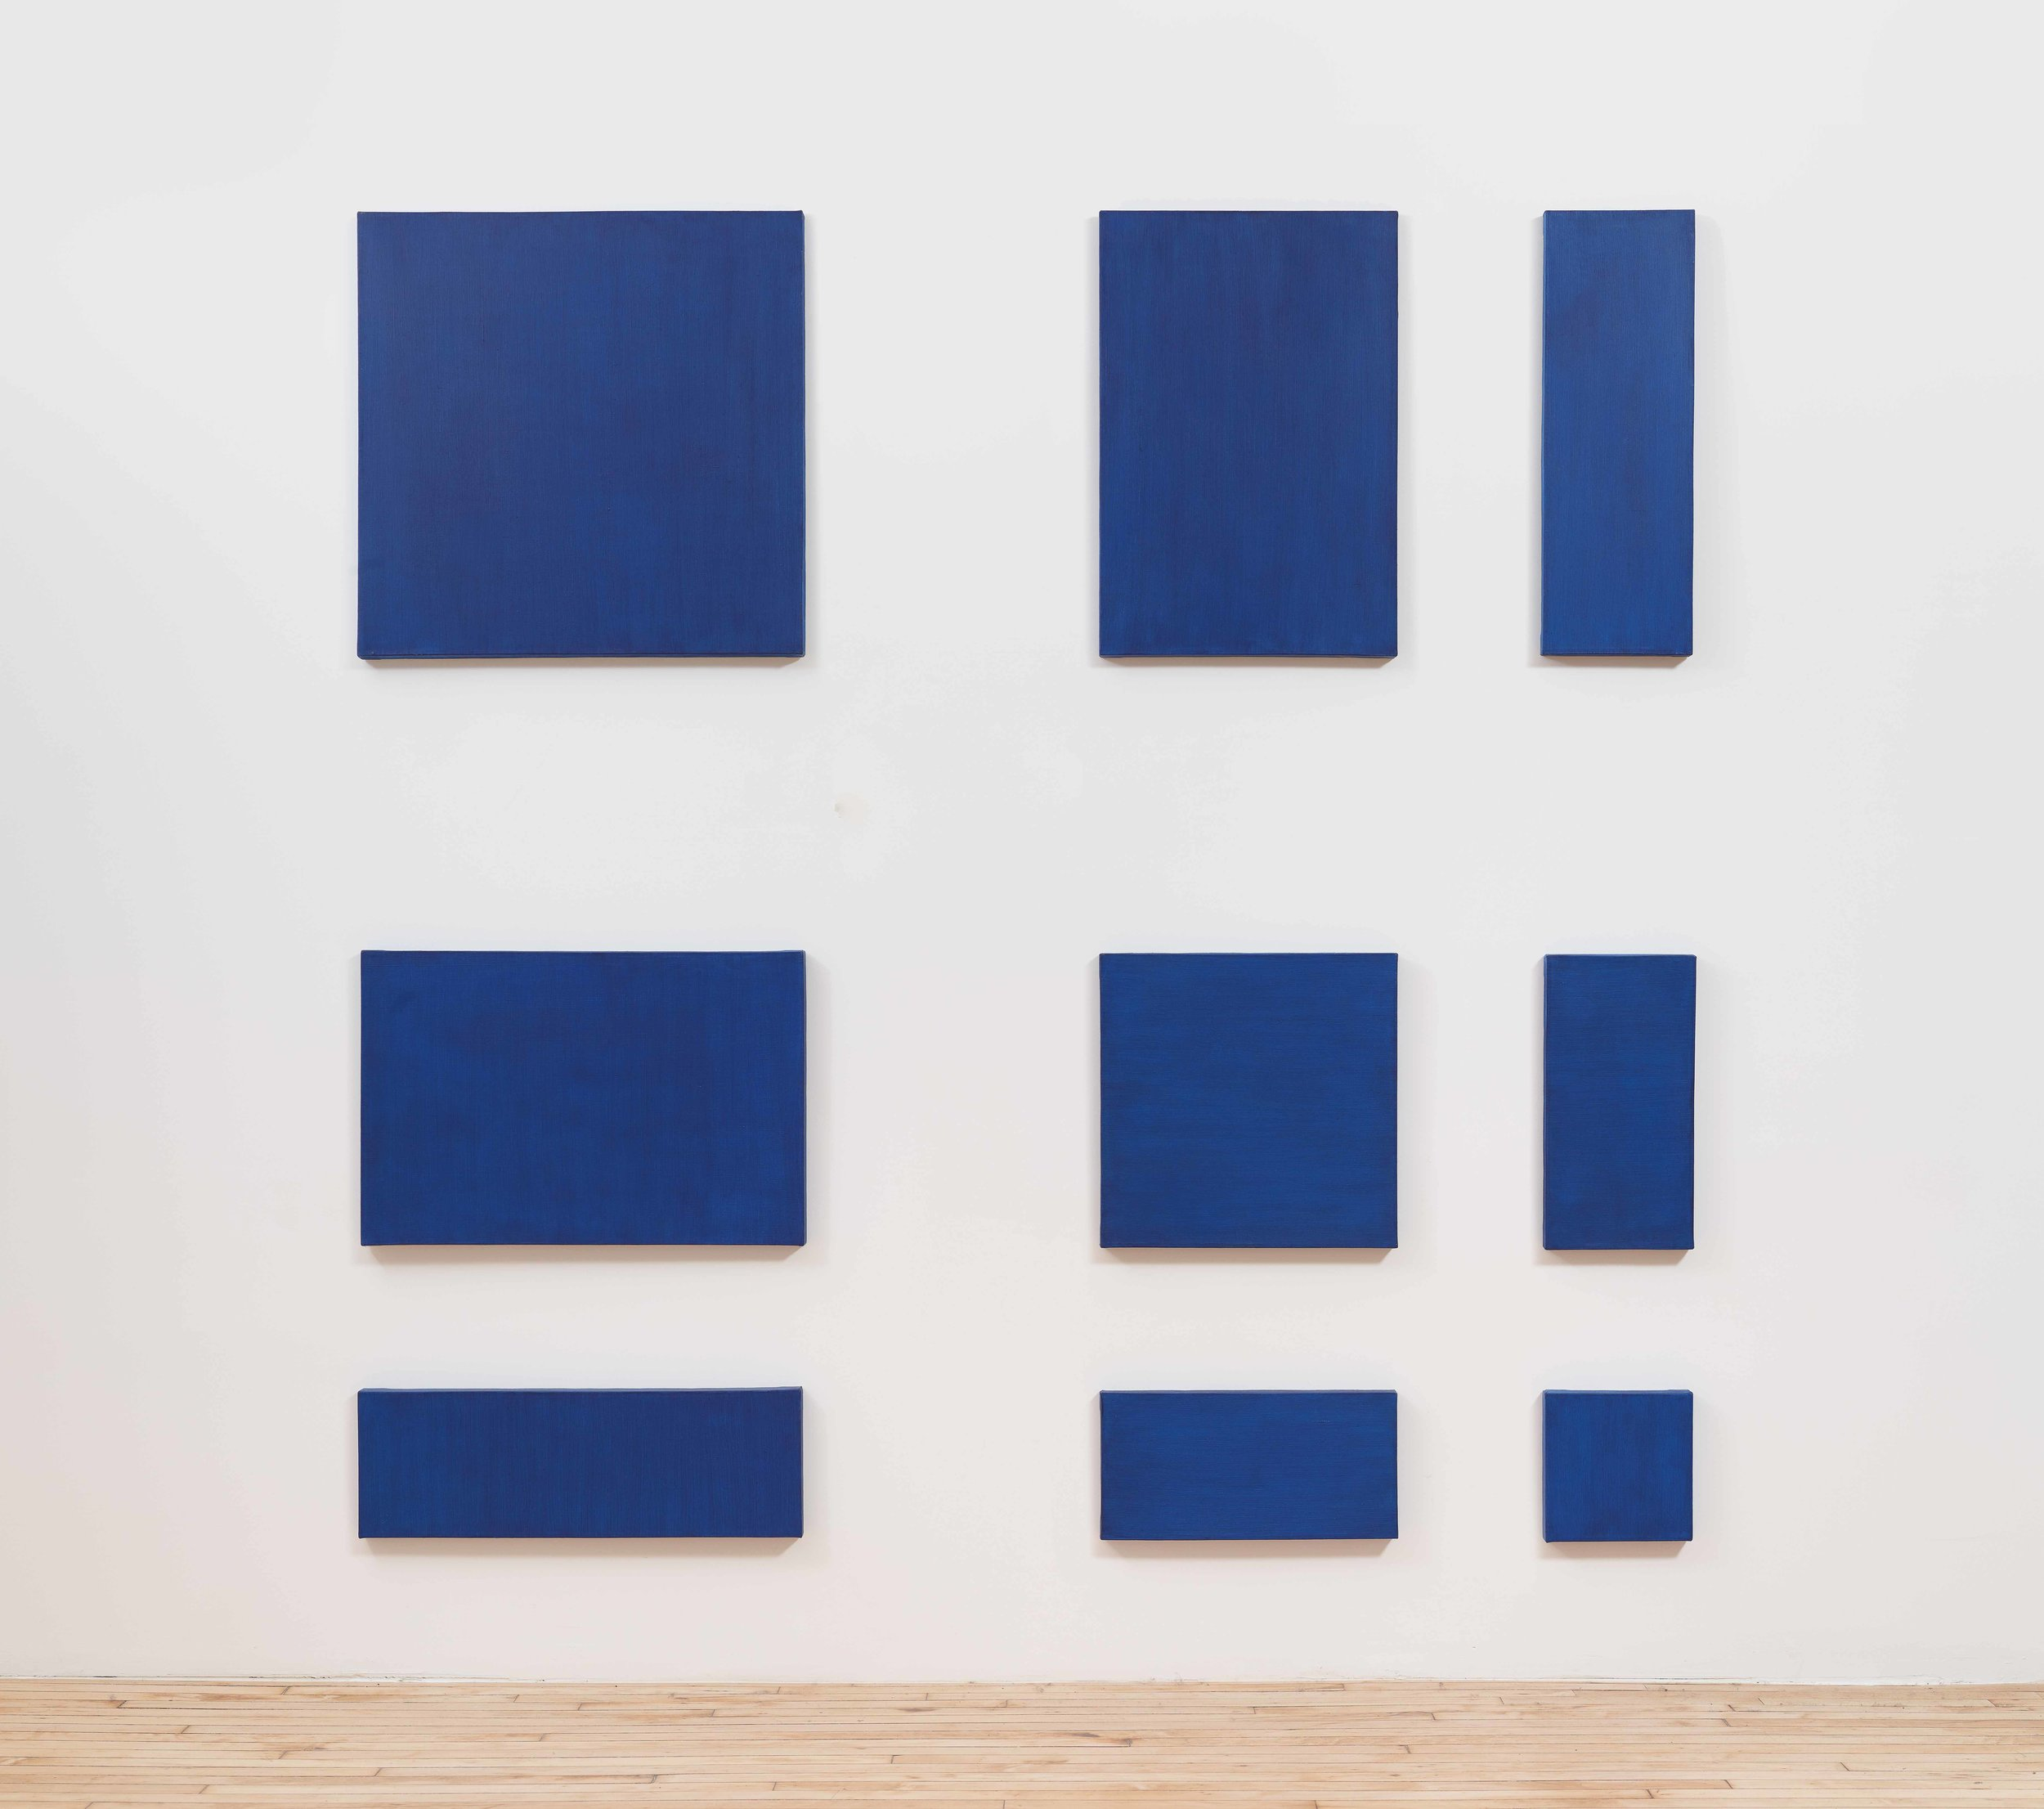 Blue square in top left corner with smaller rectangles of the same color radiating outward to form a grid.